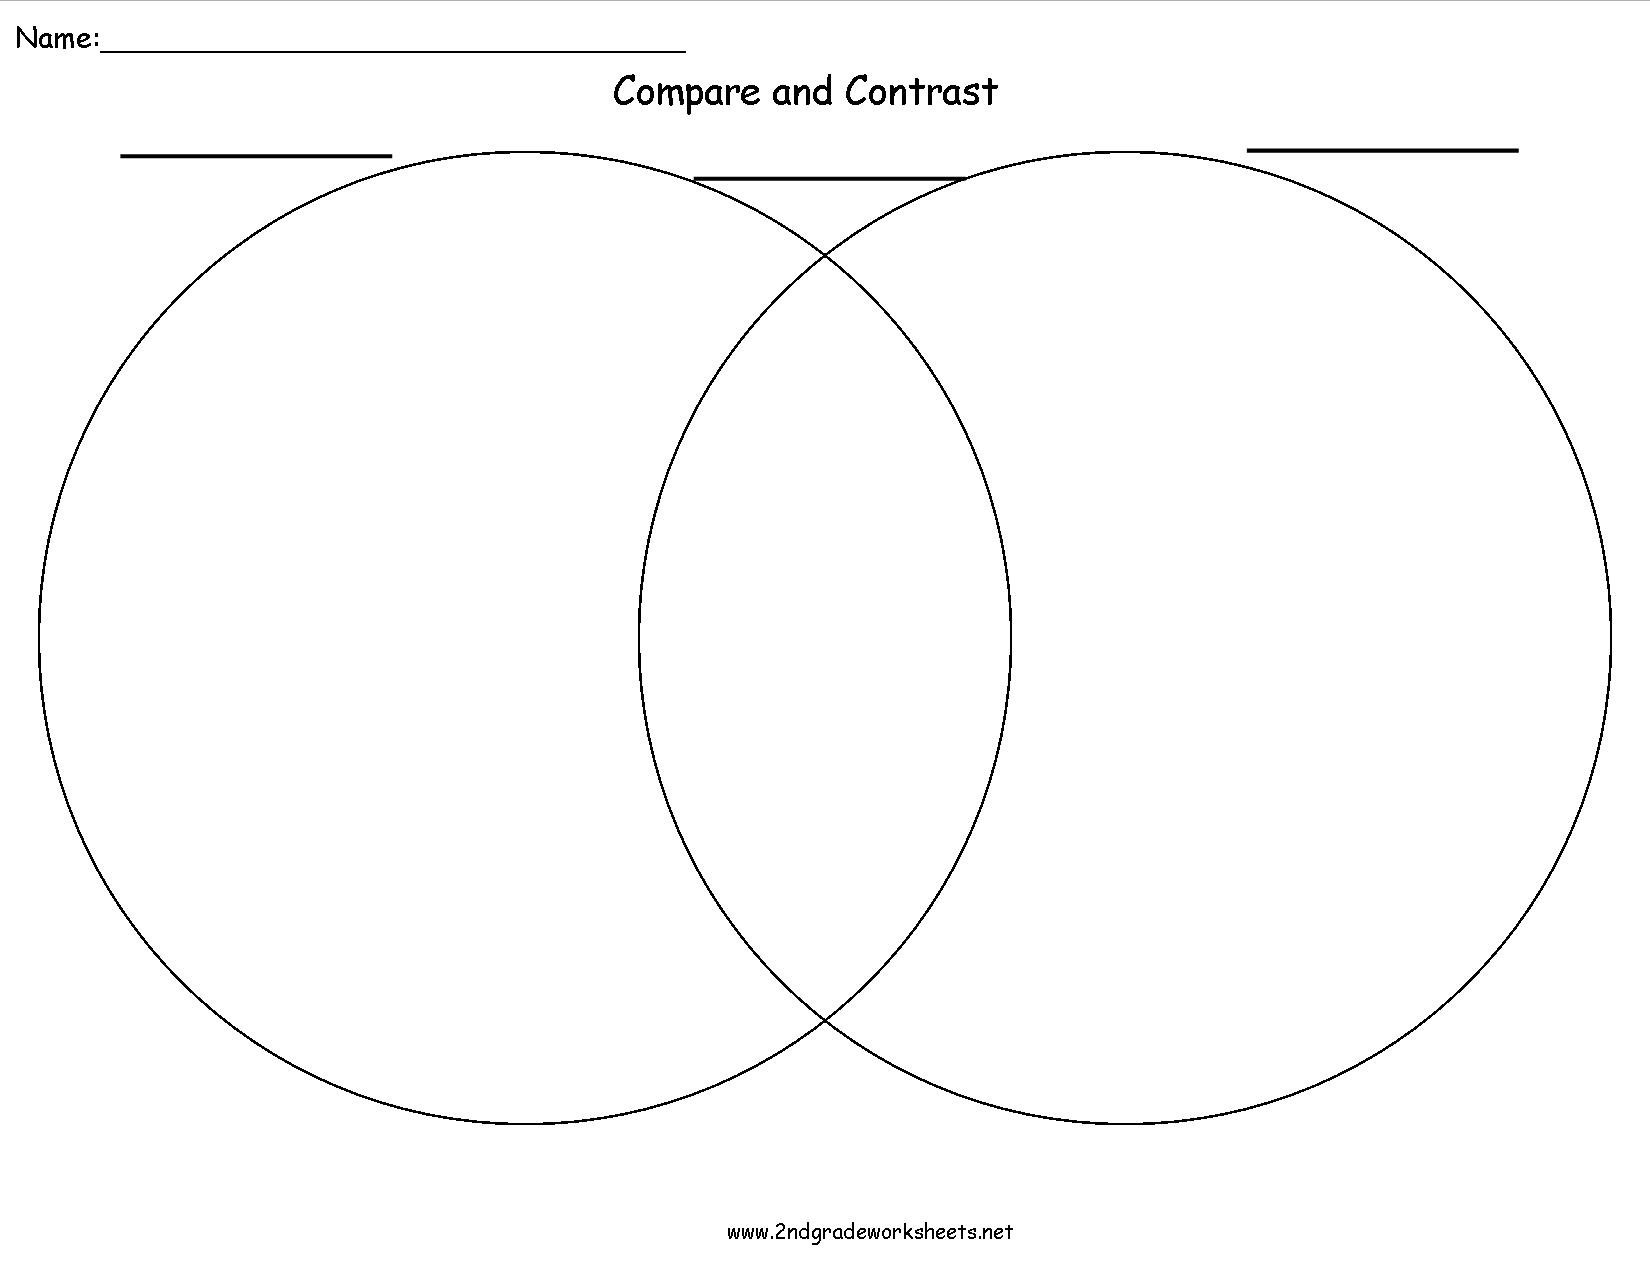 Writing Organizers Worksheets Within Compare And Contrast Worksheets 2Nd Grade